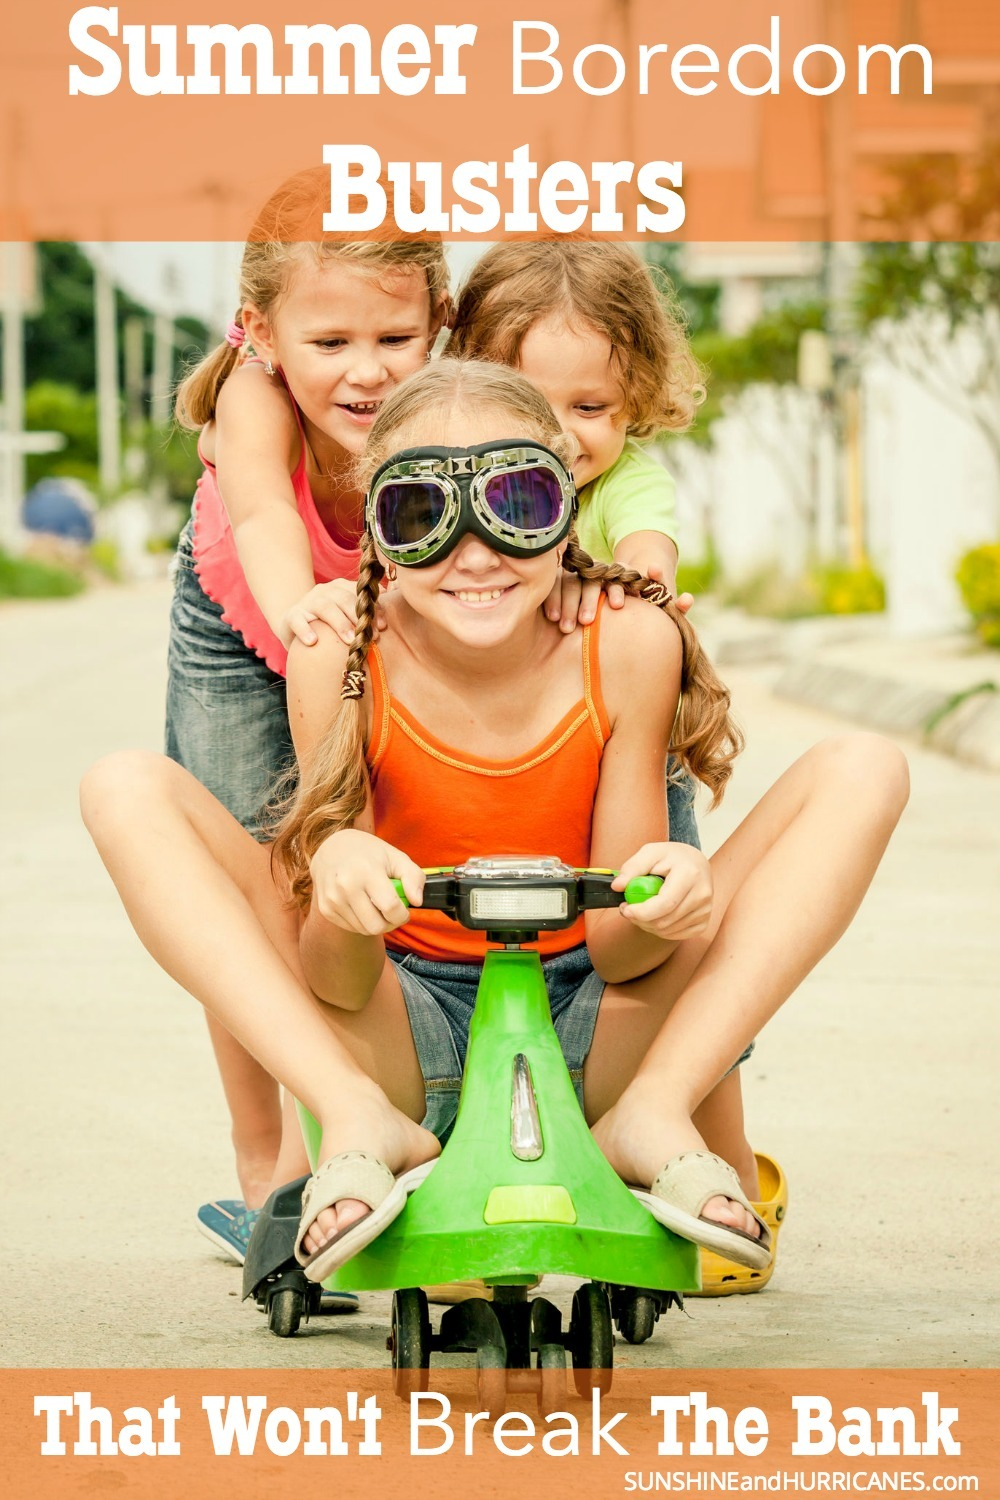 """Usually it takes less than 48 hours after school gets out for moms to hear the dreaded """"I'm Bored"""". Be ready to bust those summer blues with this HUGE list of Summer Boredom Busters that are all budget friendly and in most cases totally free. SunshineandHurricanes.com"""